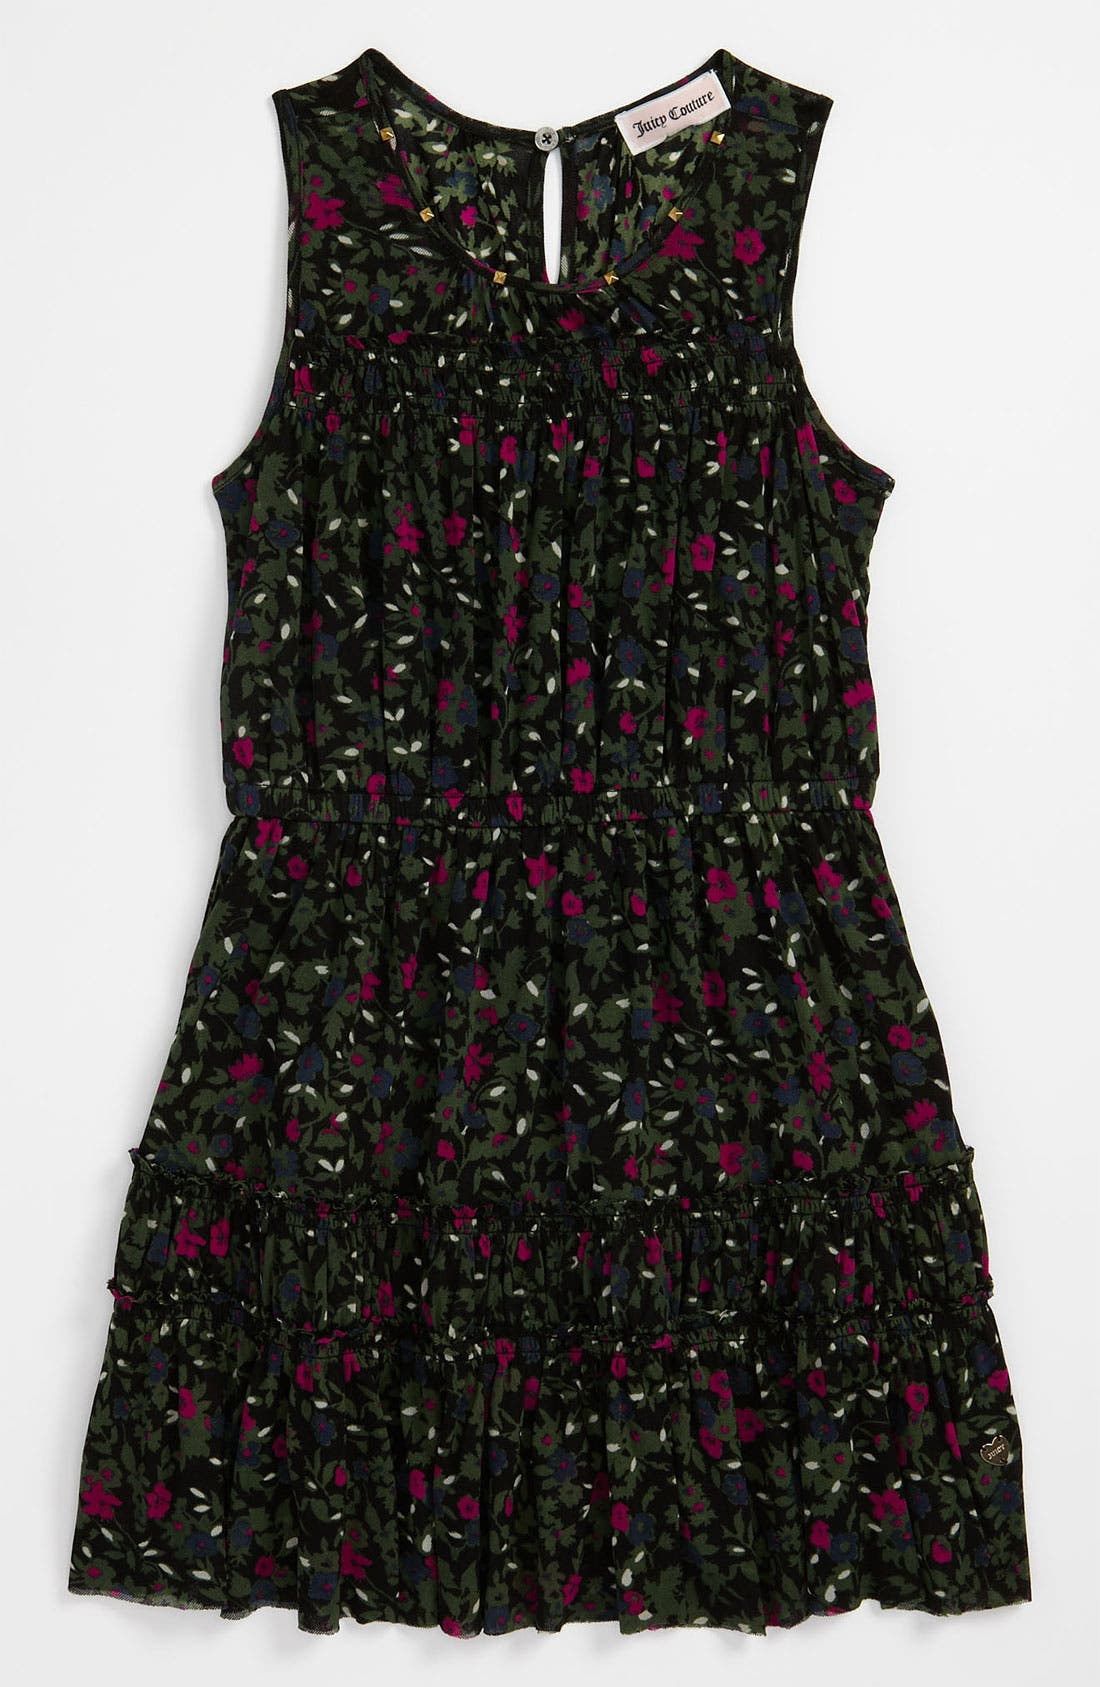 Main Image - Juicy Couture 'Clareville' Printed Mesh Dress (Little Girls & Big Girls)